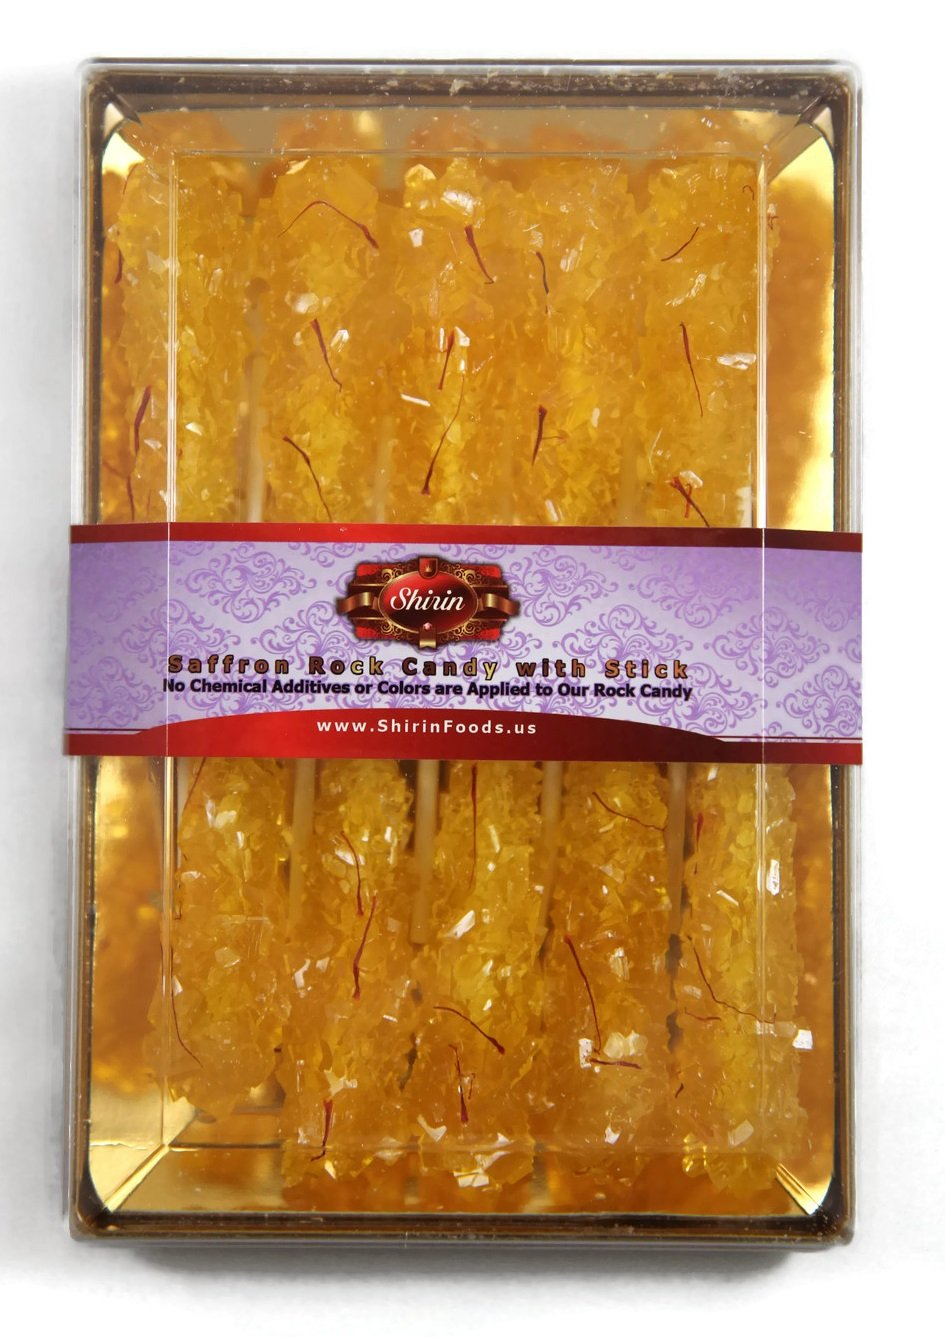 SHIRIN Saffron Rock Candy with Stick(10 Sticks),250 Grams((9 OZ)